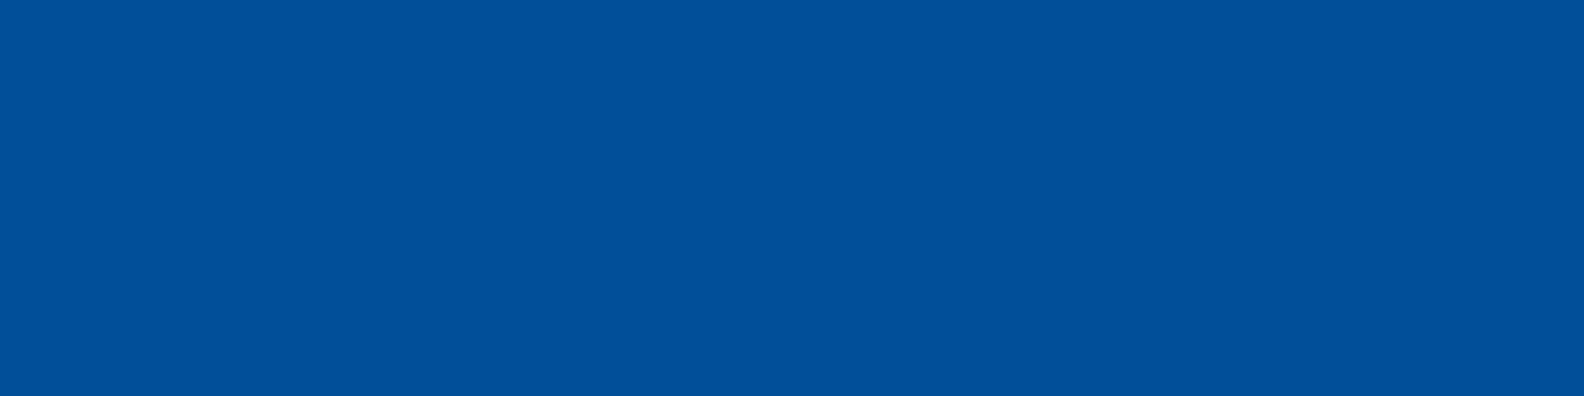 1584x396 USAFA Blue Solid Color Background